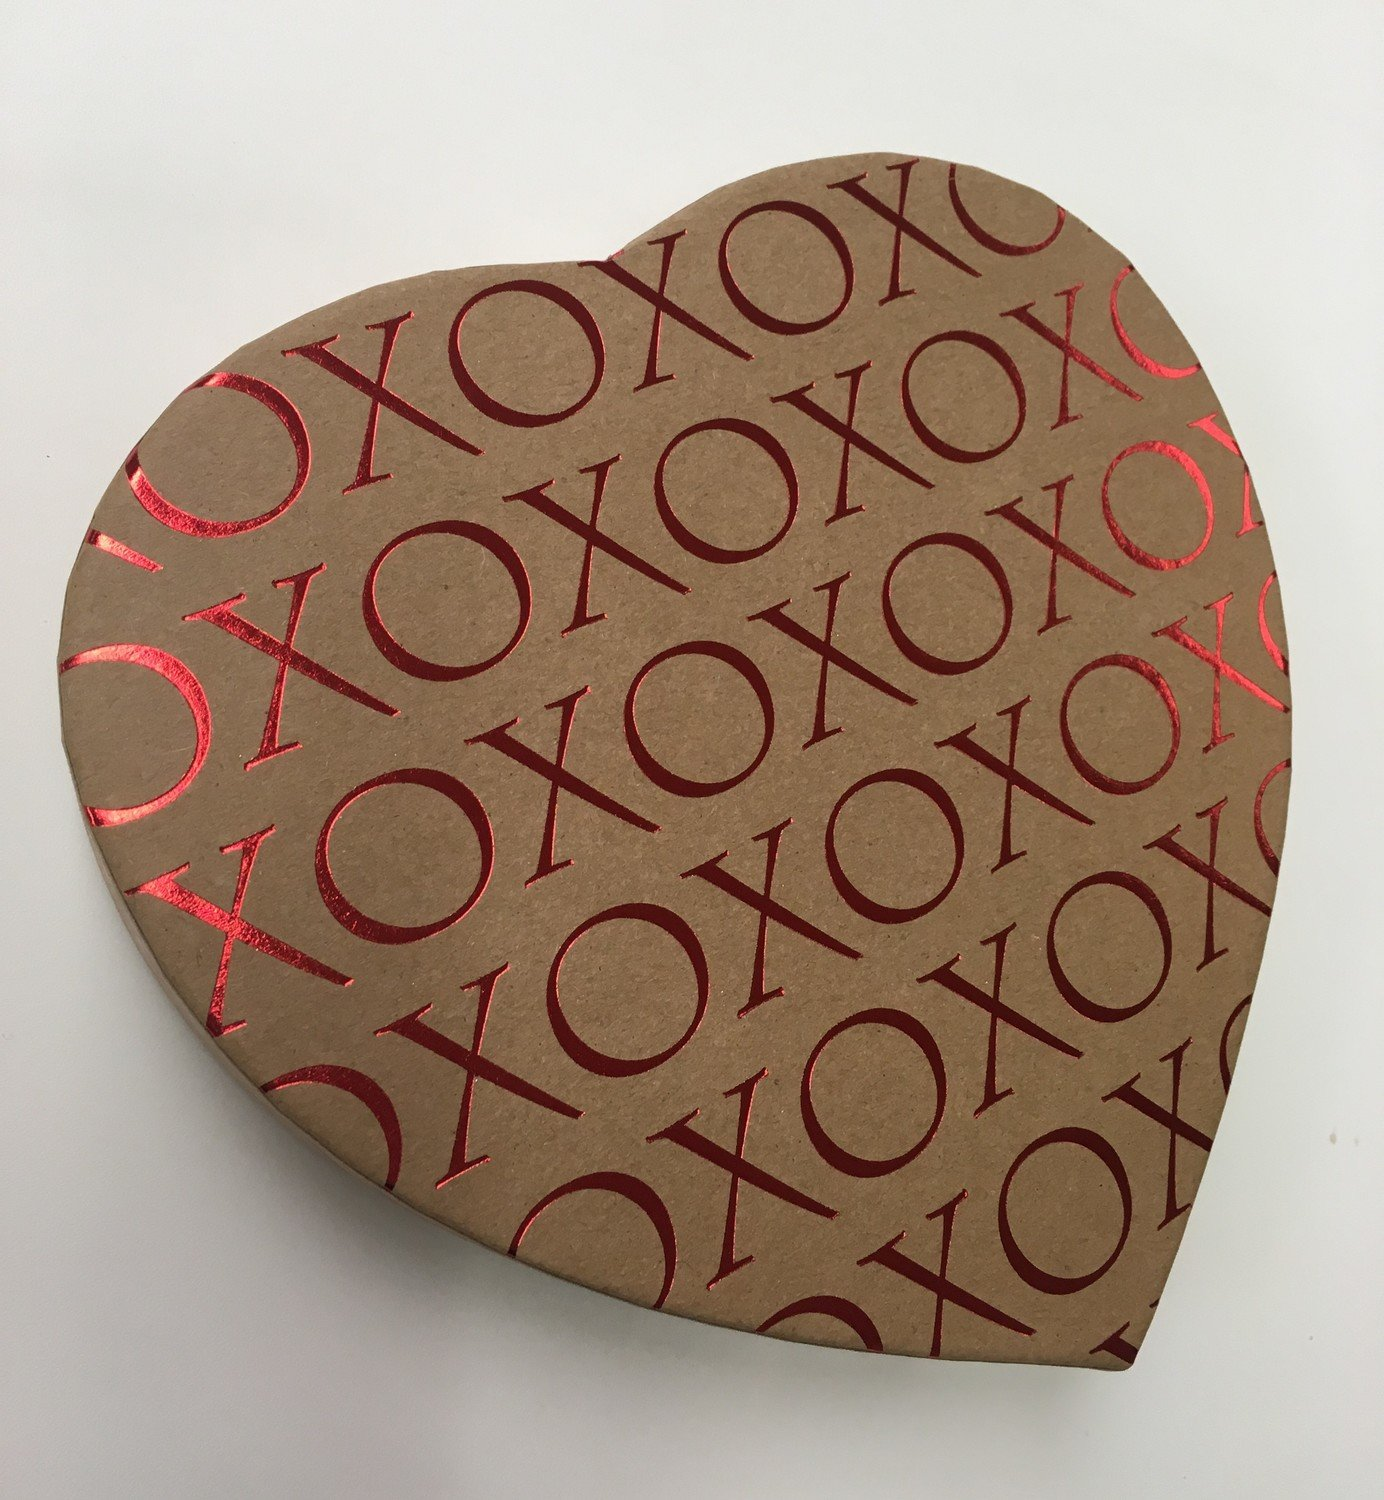 .54 Lbs Assorted Chocolates in XOXO Box.  Shipping Included